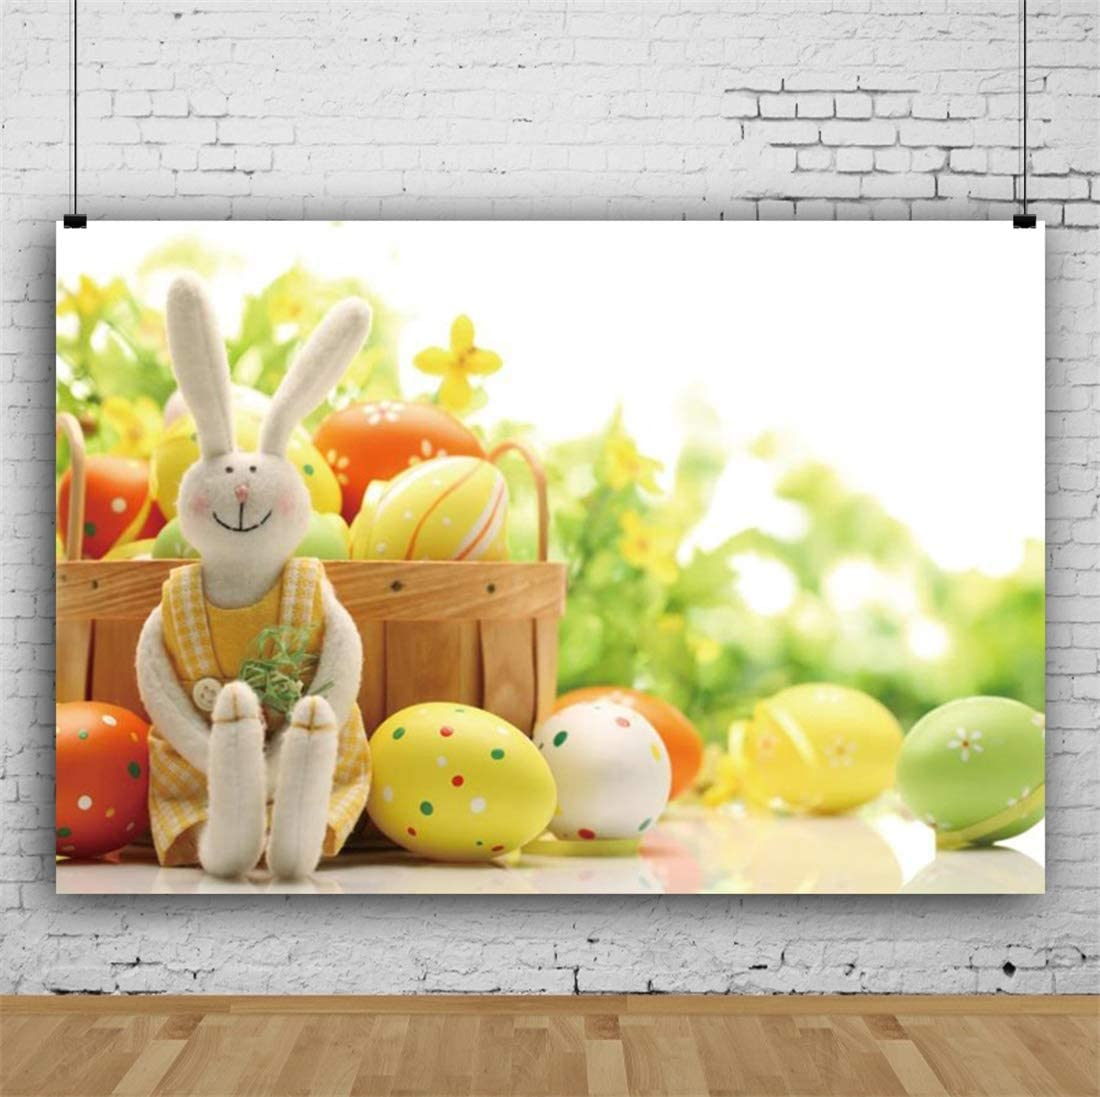 Yeele-Easter-Backdrop 10x8ft Easter Photography Background Eggs Rabbit Blurry Basket Photo Backdrops Pictures Studio Props Wallpaper